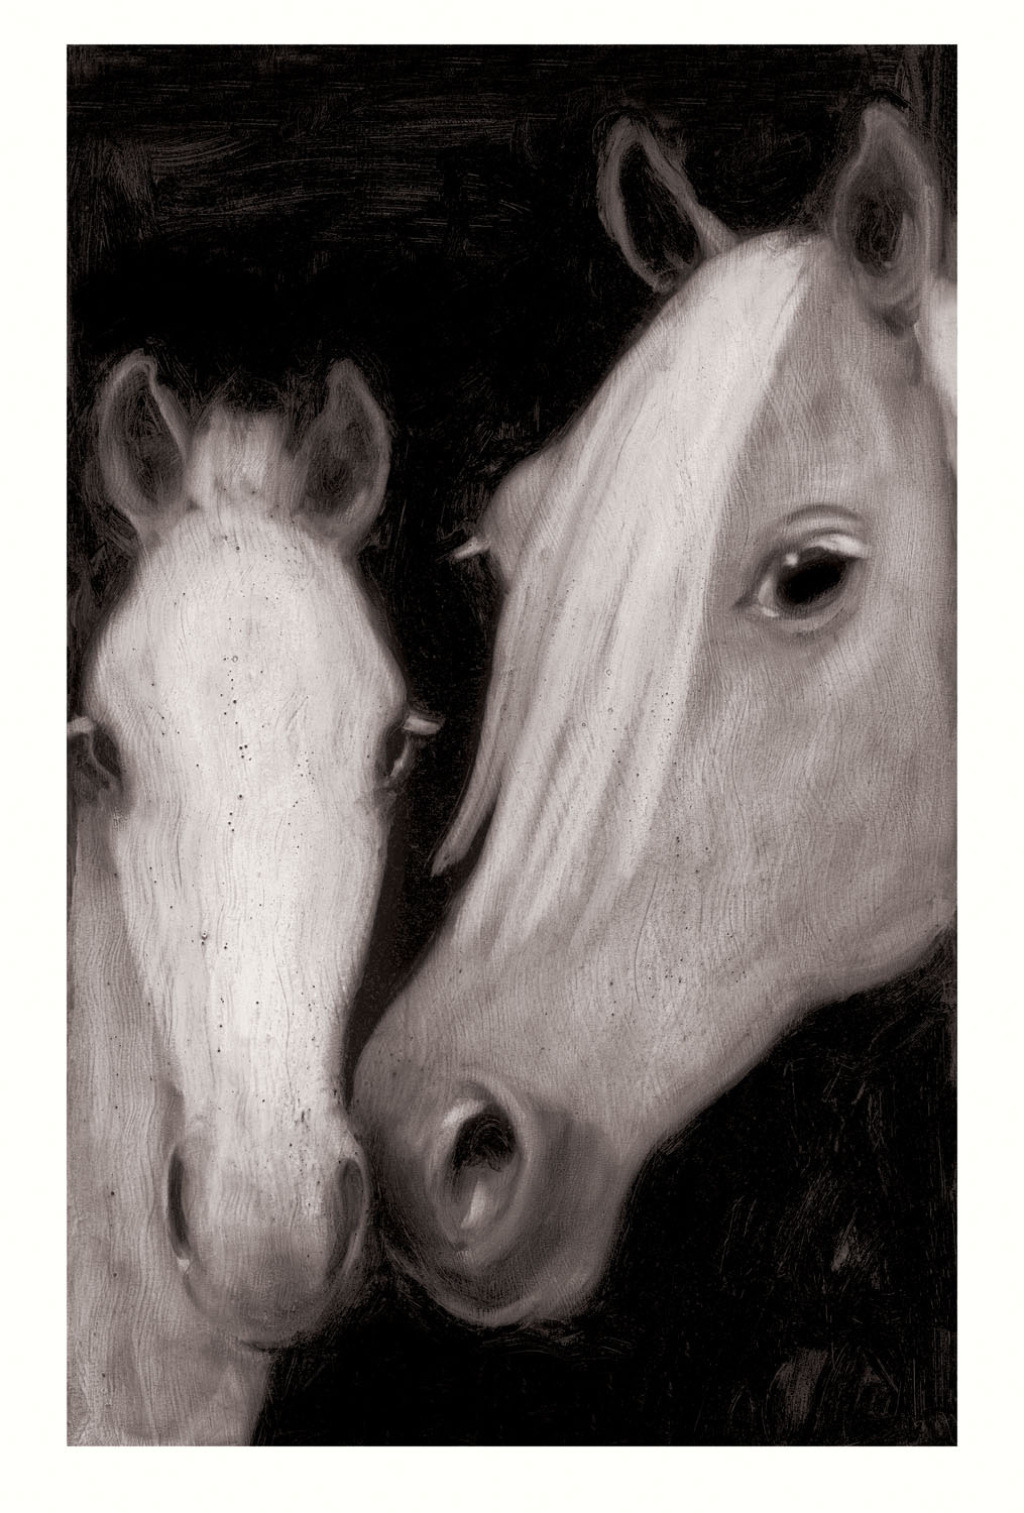 Artwork of the day: Mare & Foal, 2004 by Joe Andoe